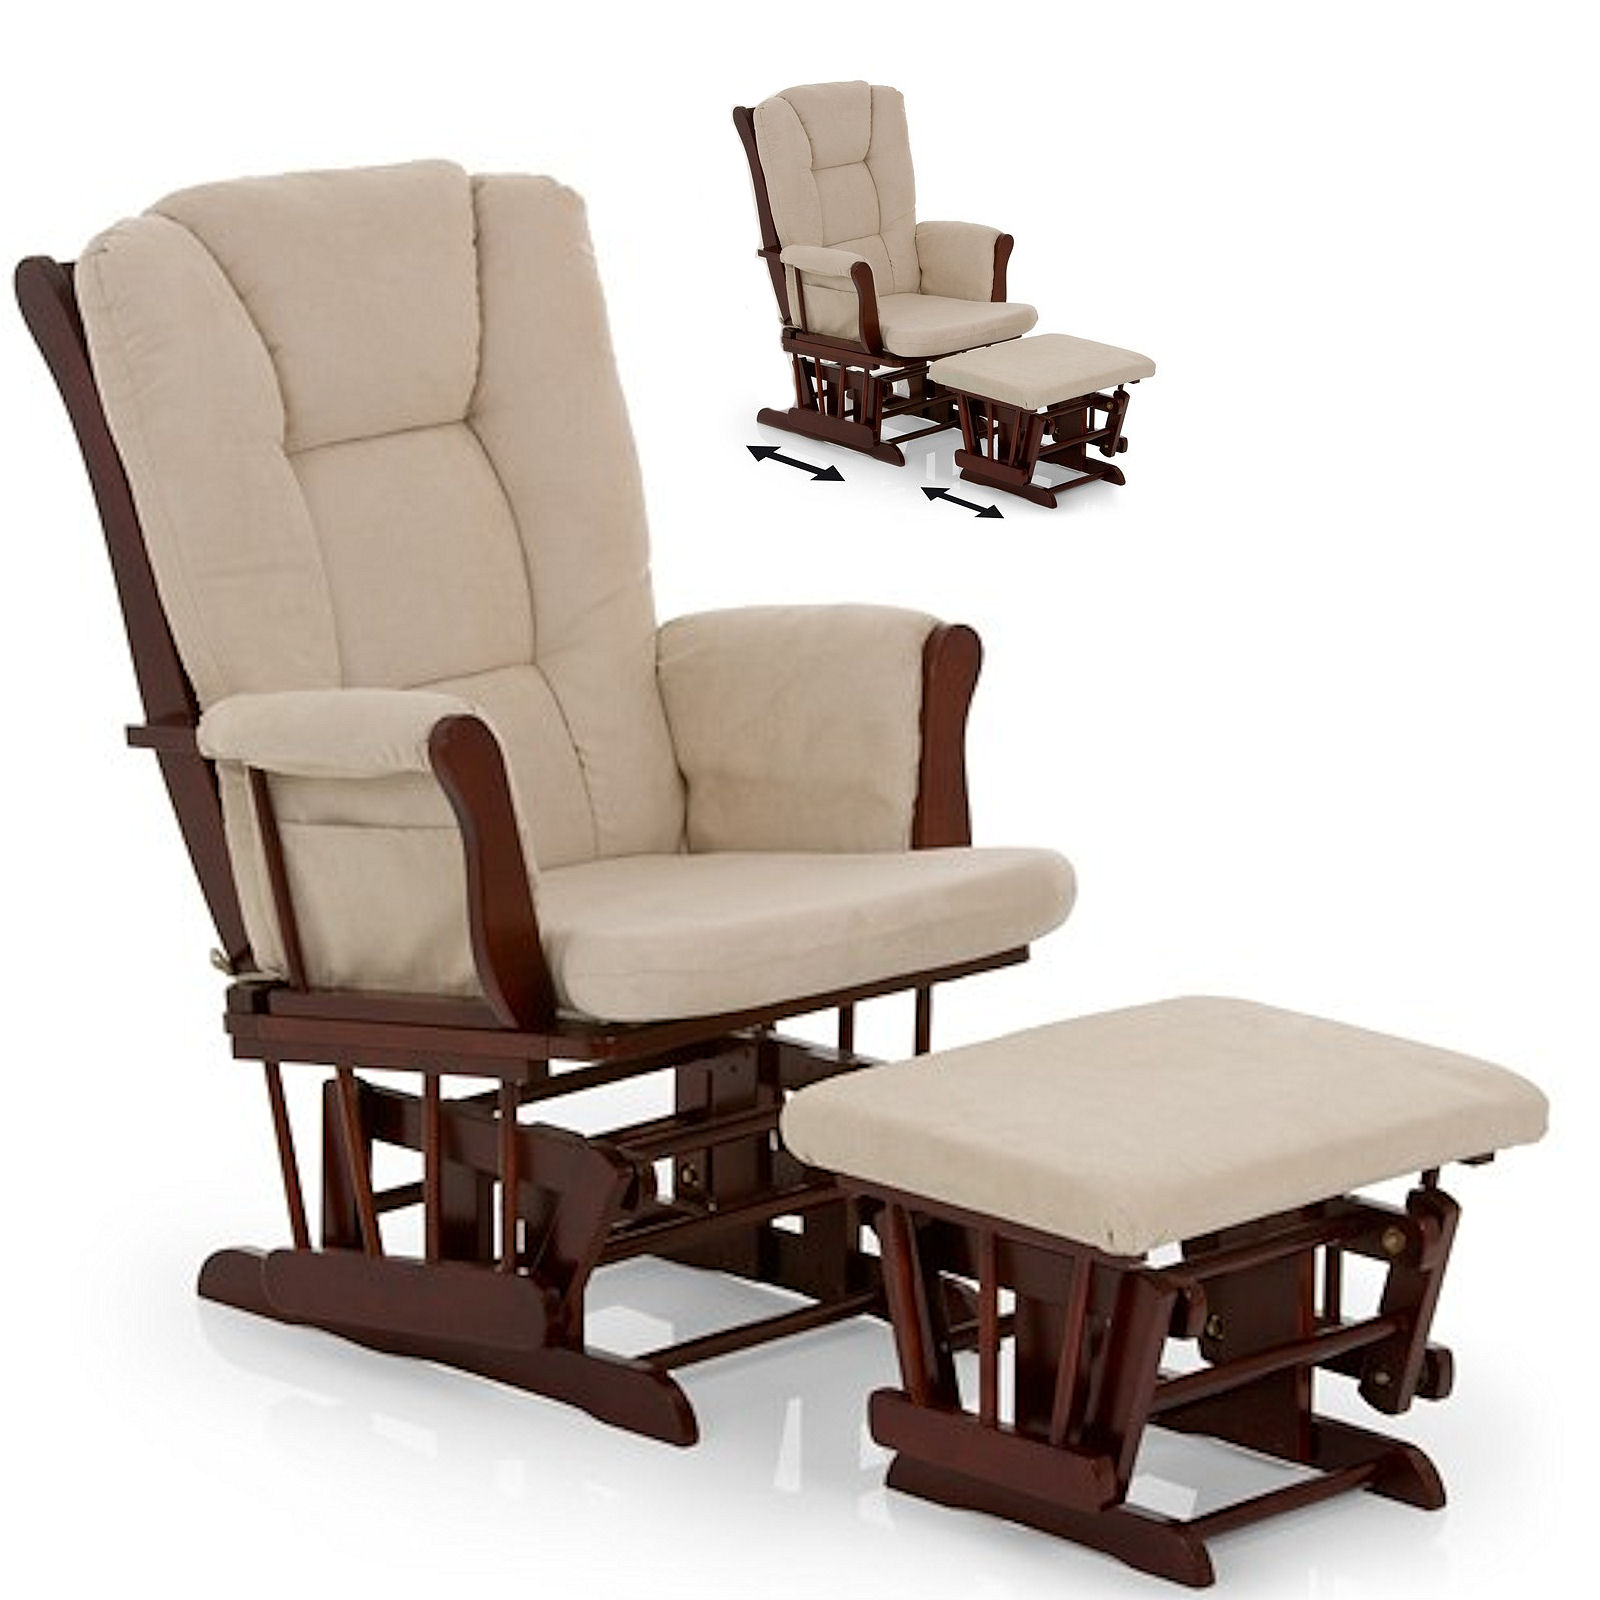 Cosatto glider chair and stool chairs seating for Furniture gliders